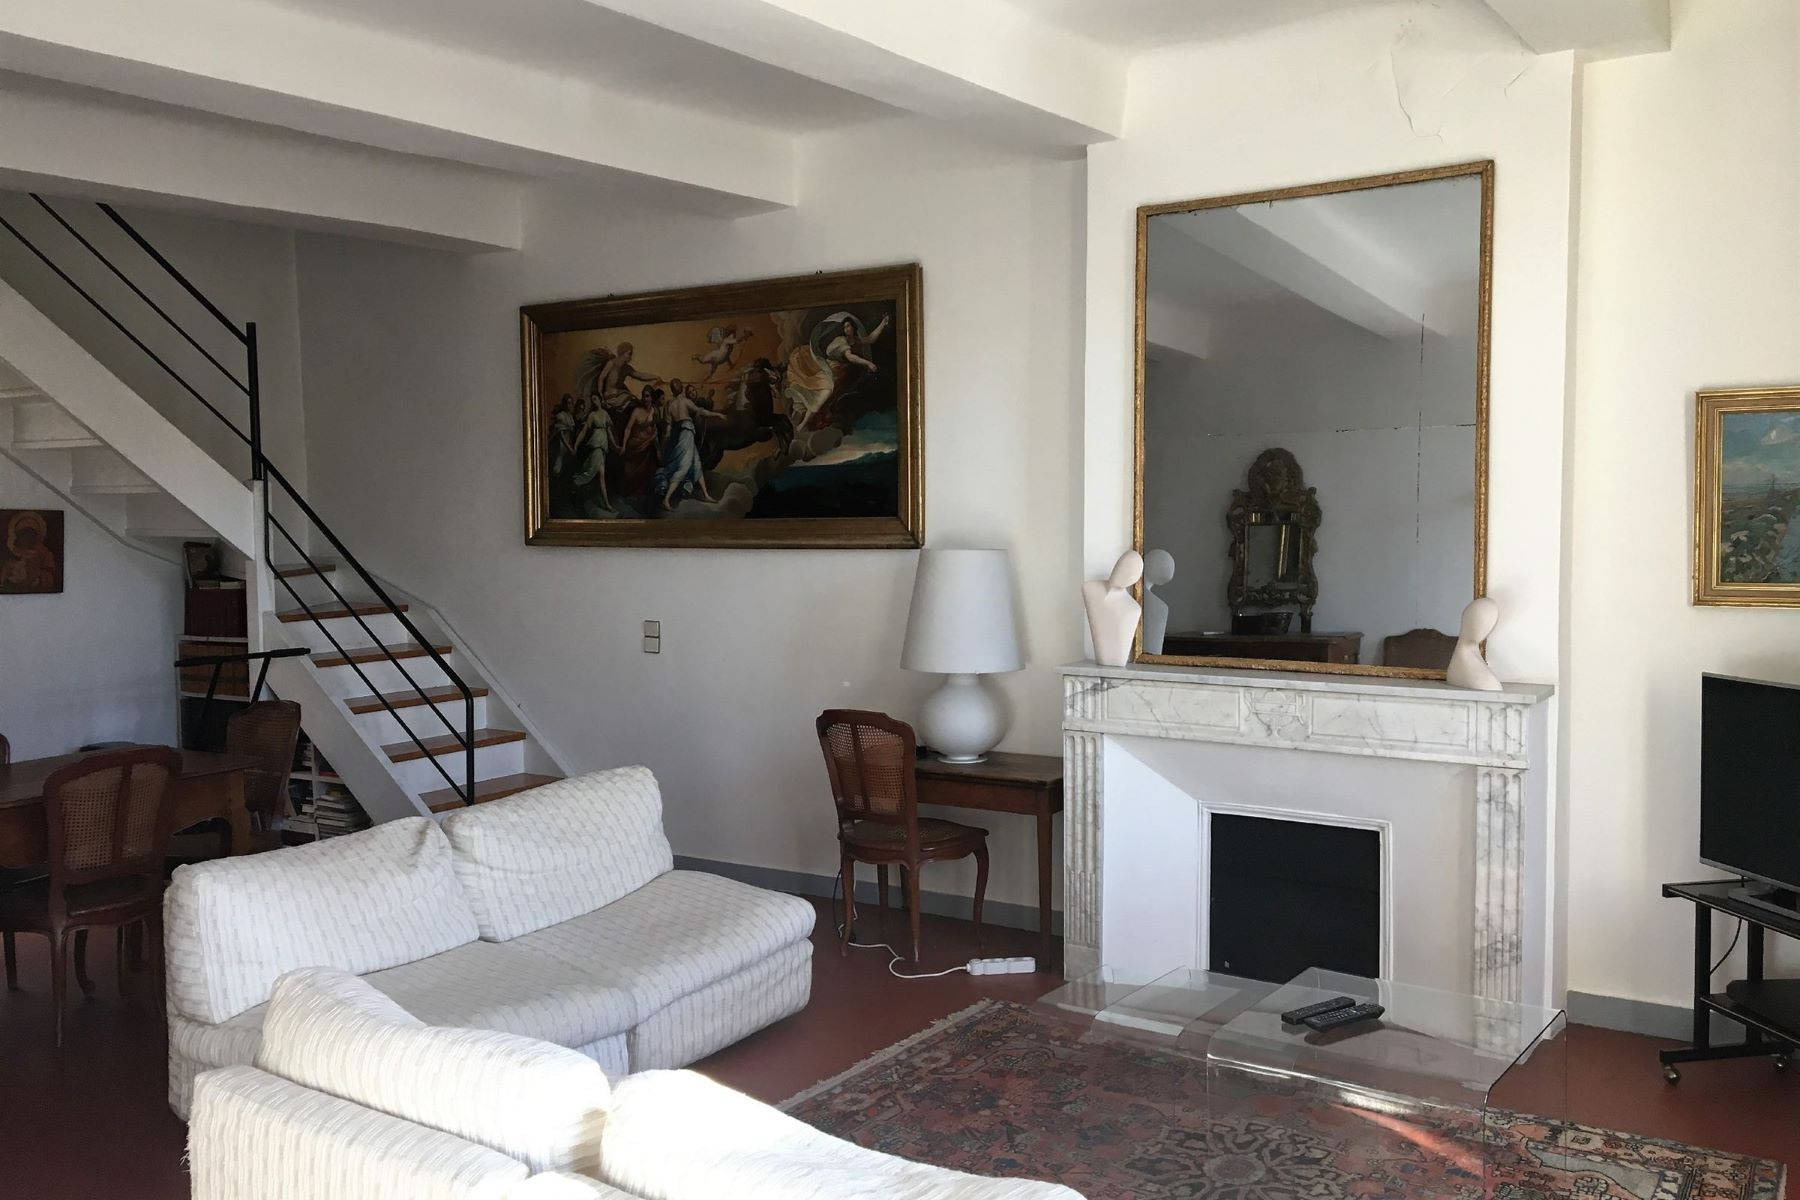 Duplex for Sale at DUPLEX Rotonde center of Aix en Provence Aix-En-Provence, Provence-Alpes-Cote D'Azur, 13100 France